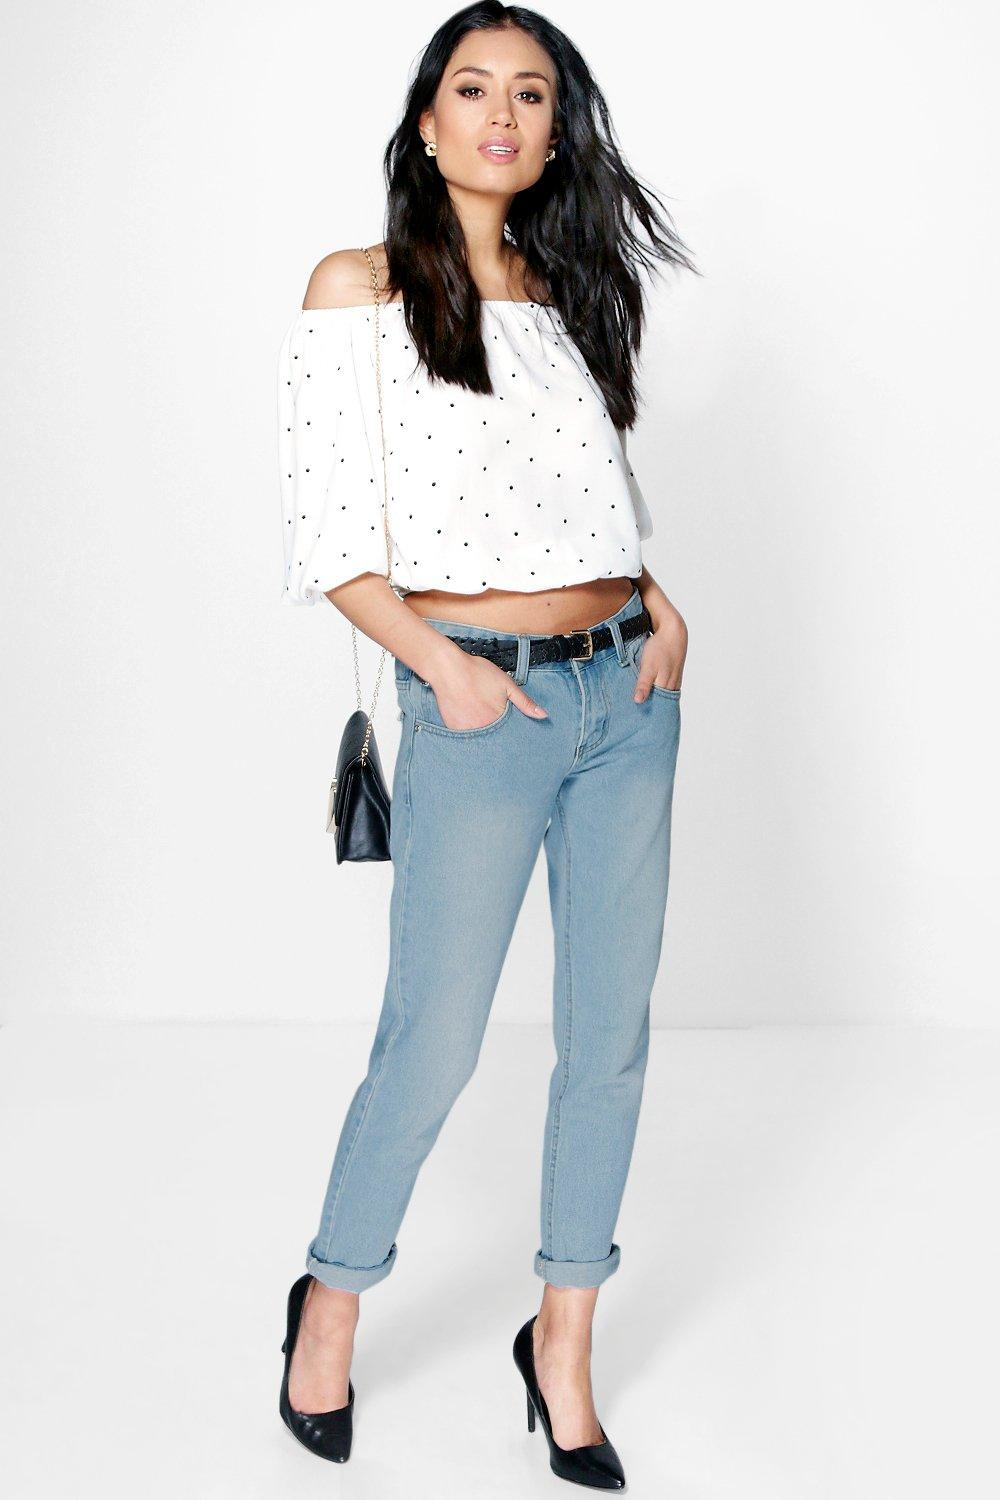 lyst boohoo lilly low rise light wash boyfriend jeans in blue. Black Bedroom Furniture Sets. Home Design Ideas